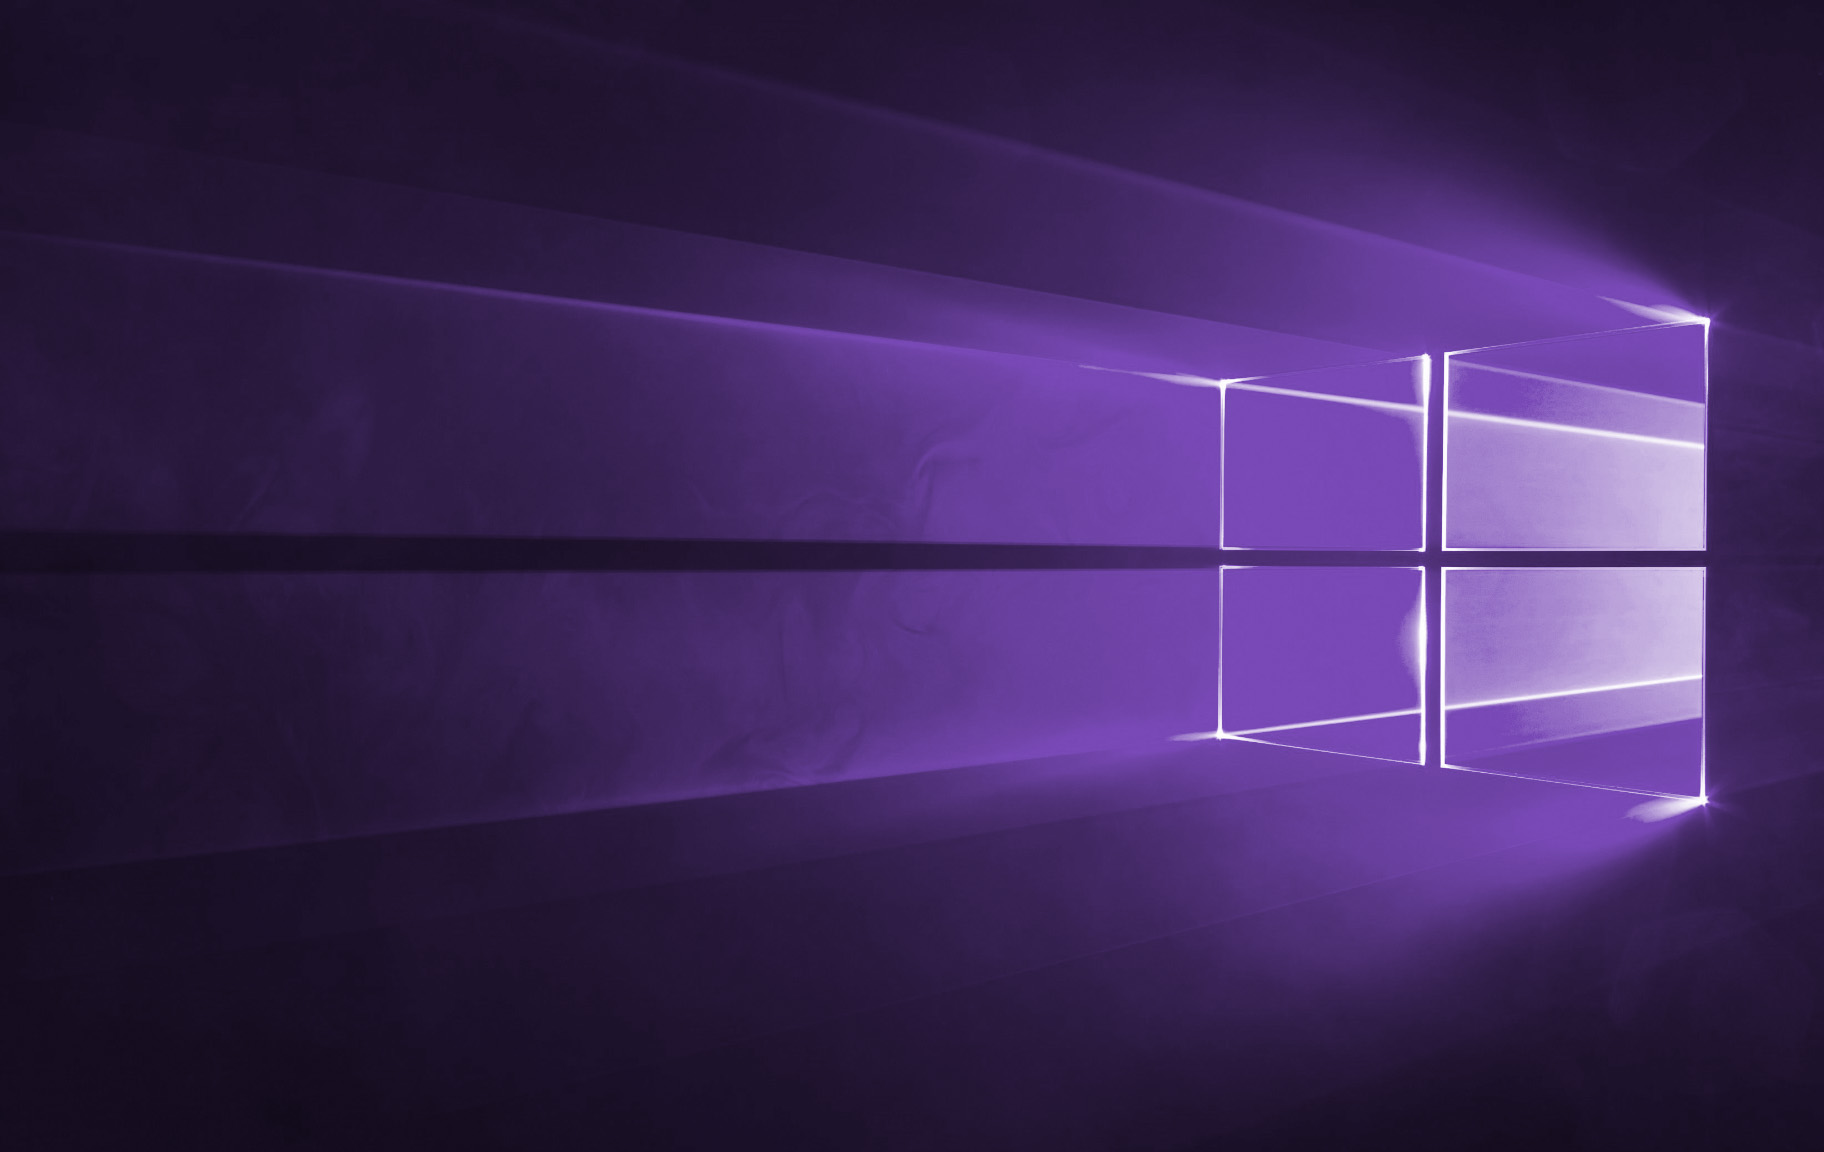 Windows wird unter Codenamen 'Polaris' rundumerneuert